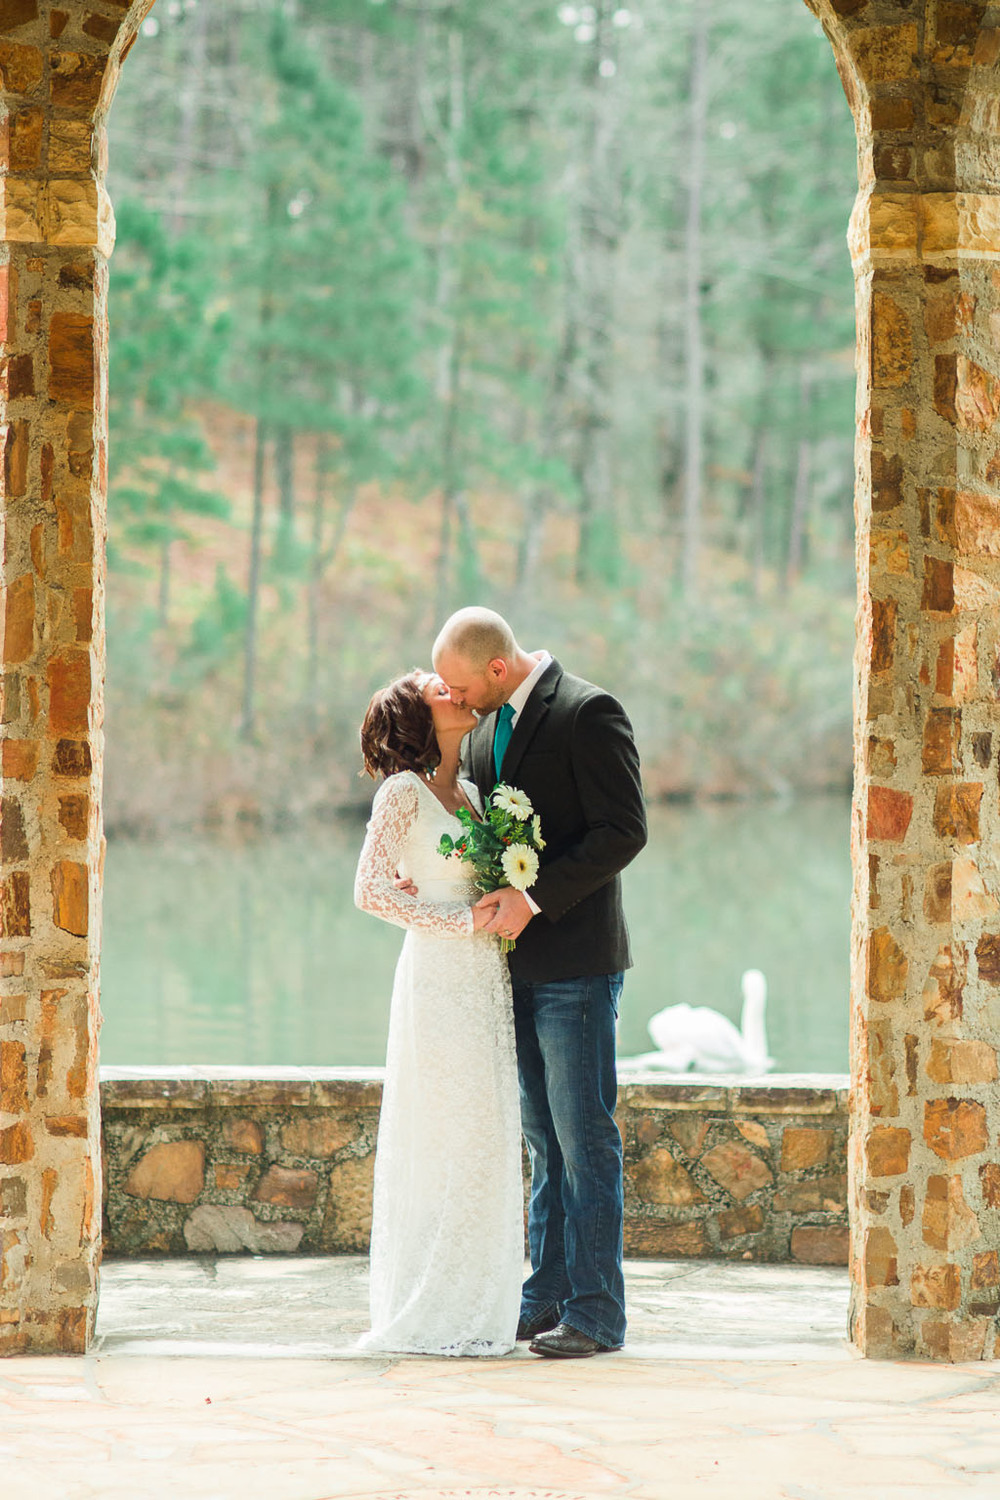 Wildwood park gazebo wedding fayetteville ar wedding photographer